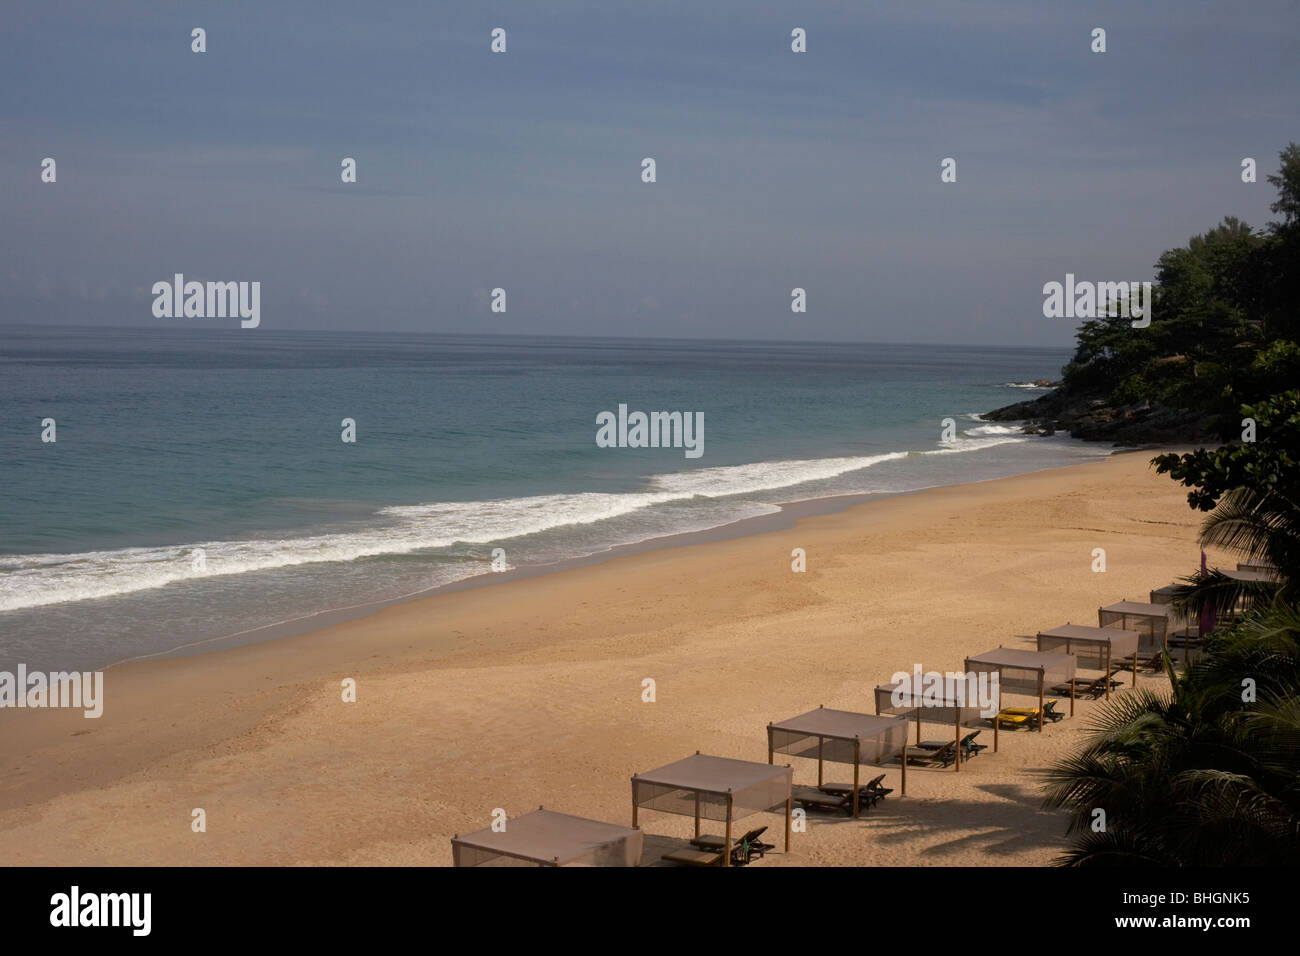 deserted beach with sunbeds - Stock Image